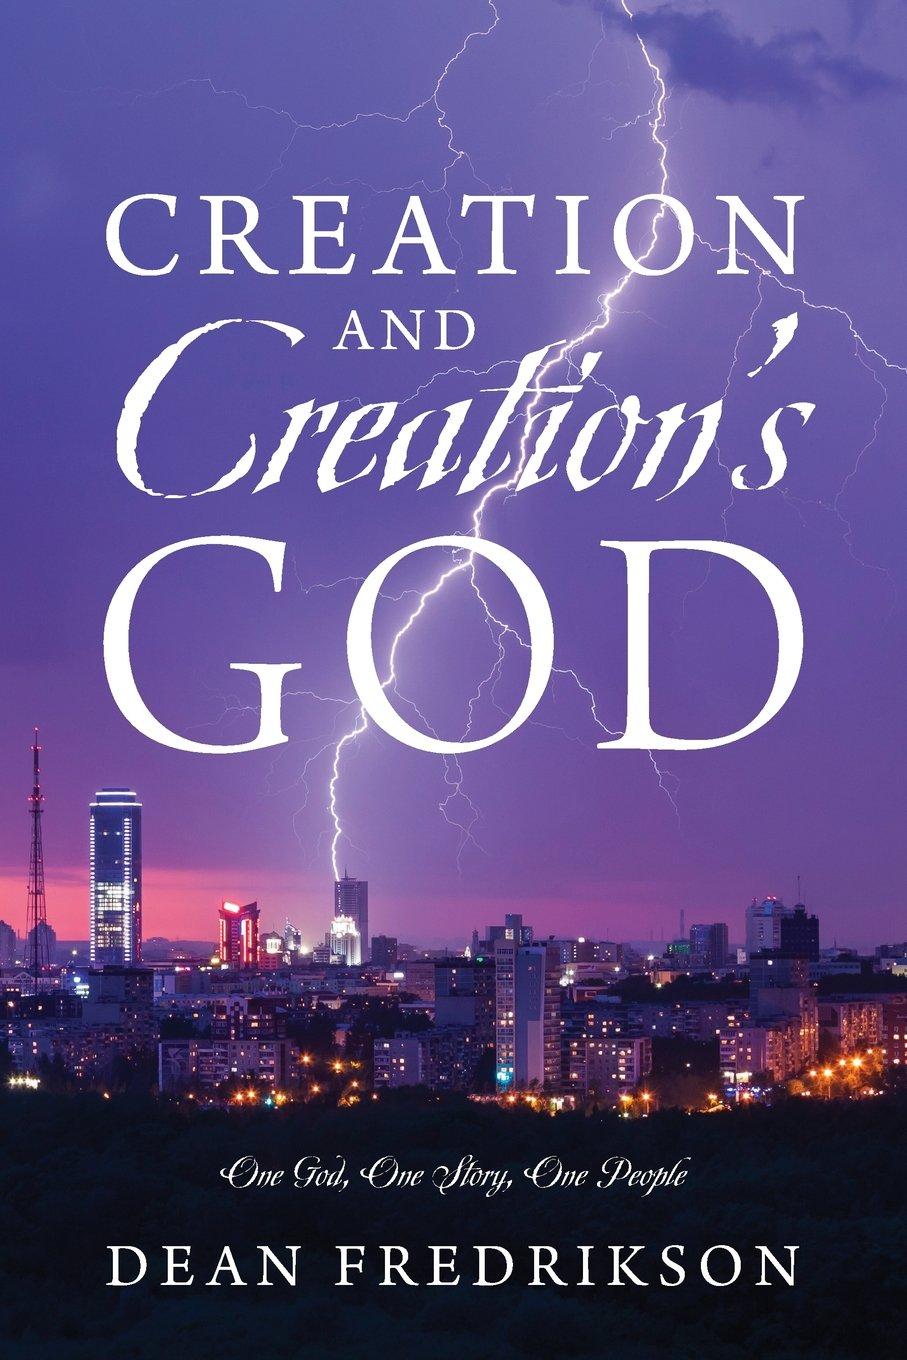 Creation and Creation's God